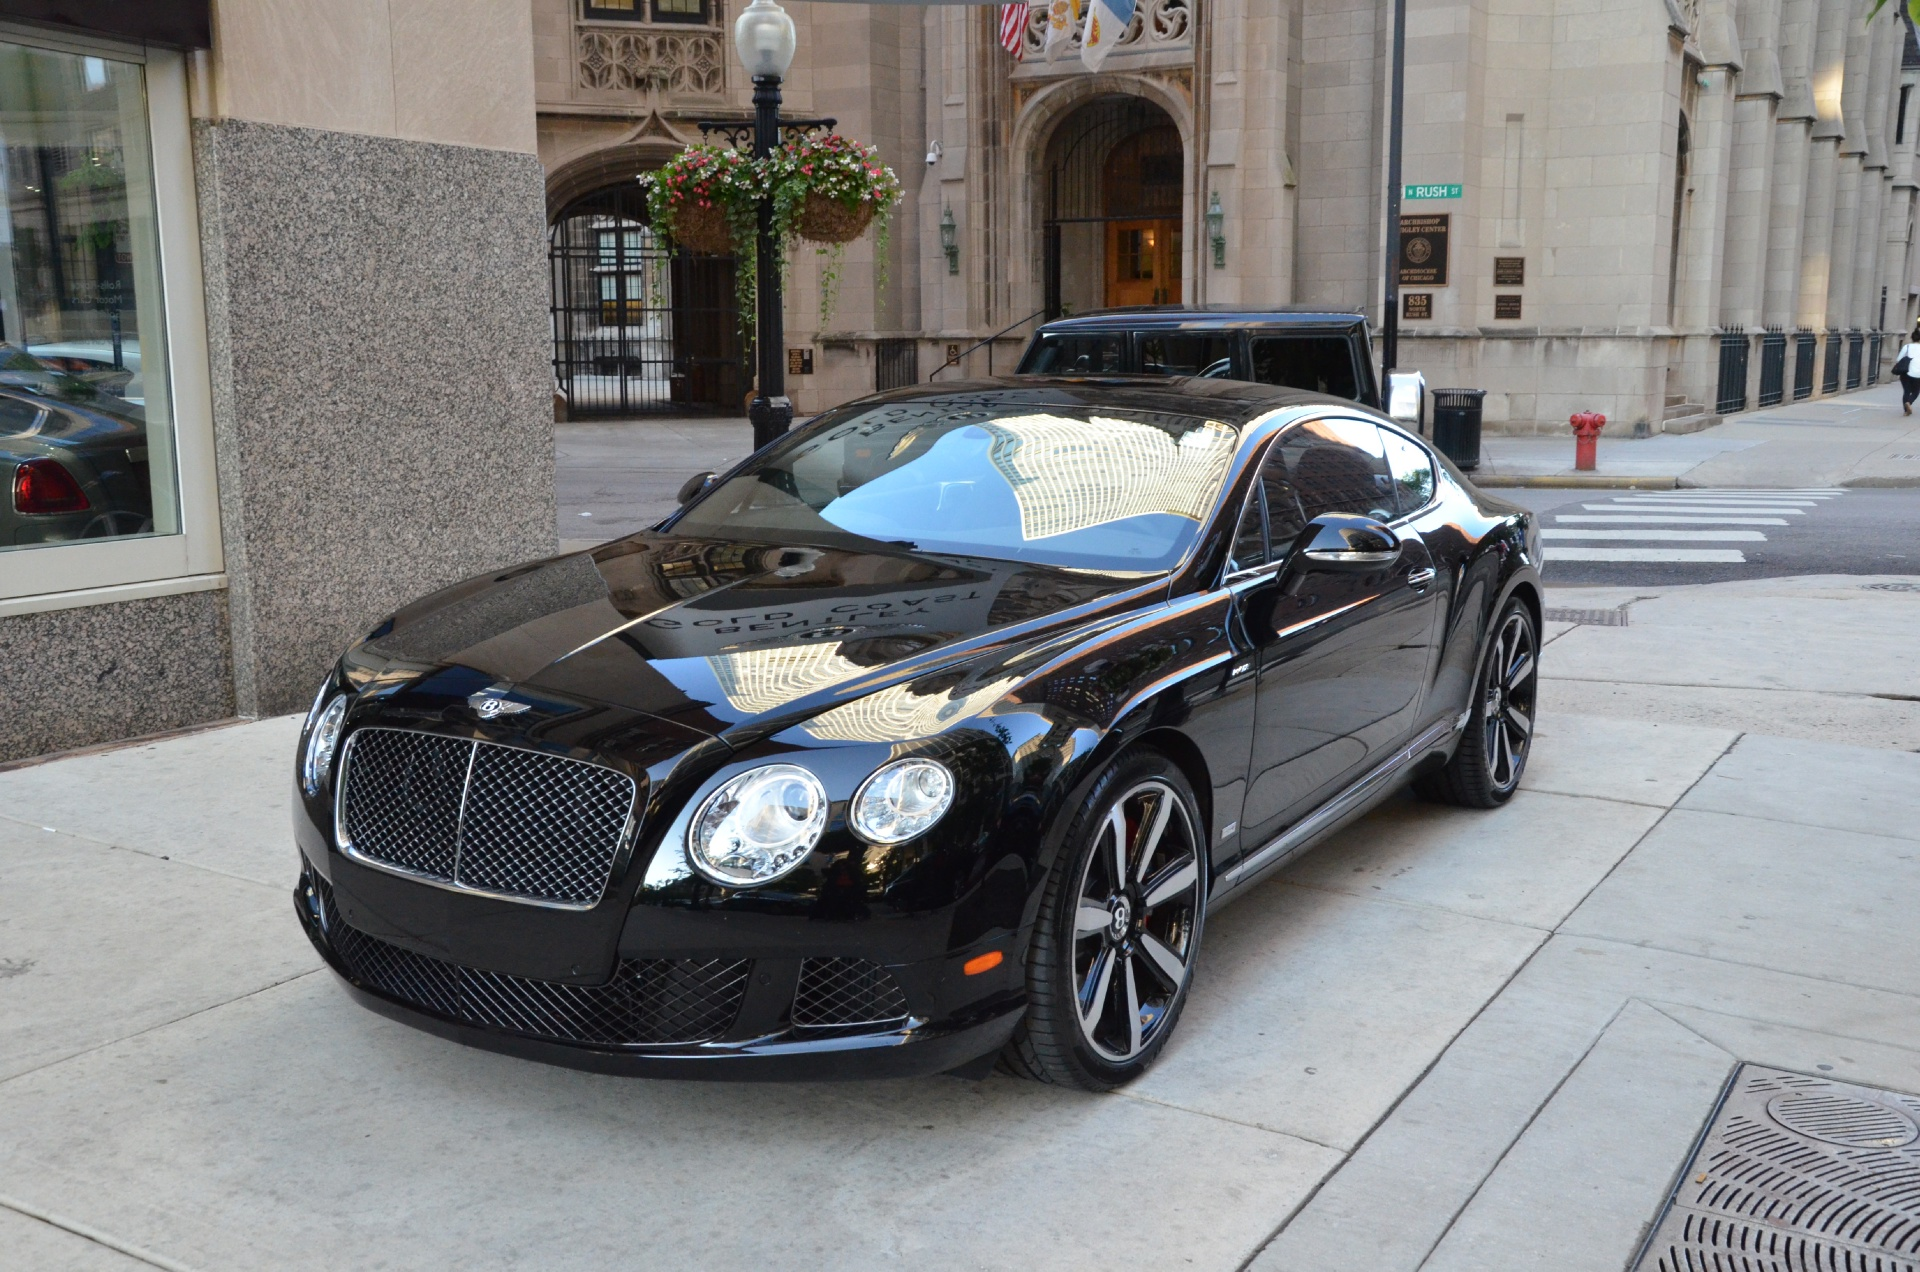 2013 bentley continental gt speed le mans edition stock b442 for sale near chicago il il. Black Bedroom Furniture Sets. Home Design Ideas